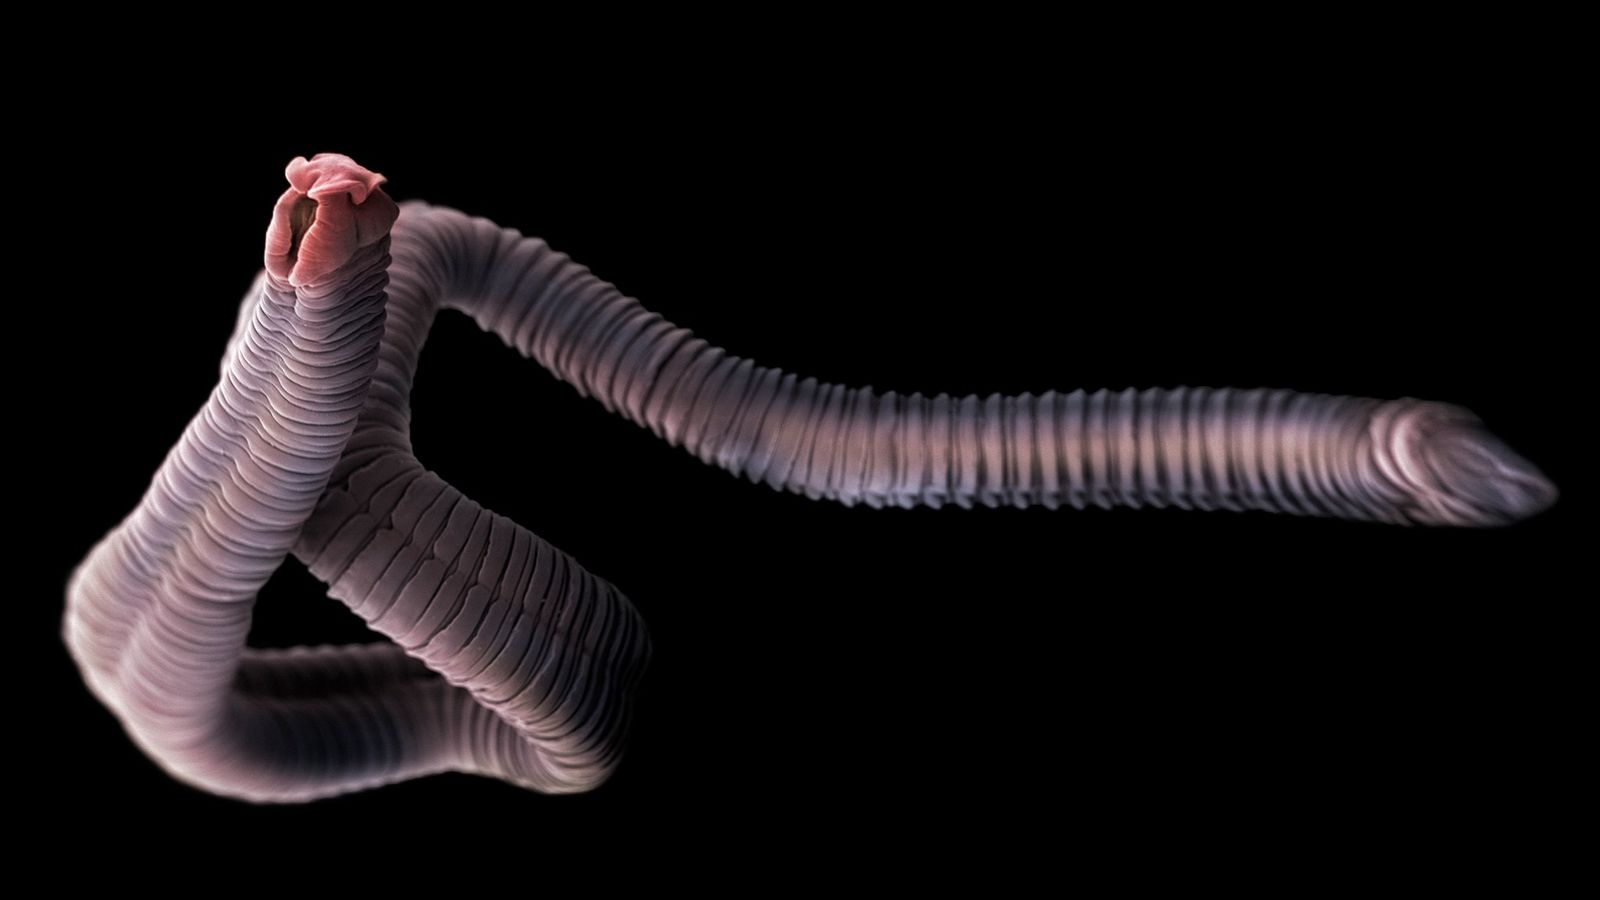 Tapeworms are parasites that live in the intestines of humans and animals, including many fish. They ...